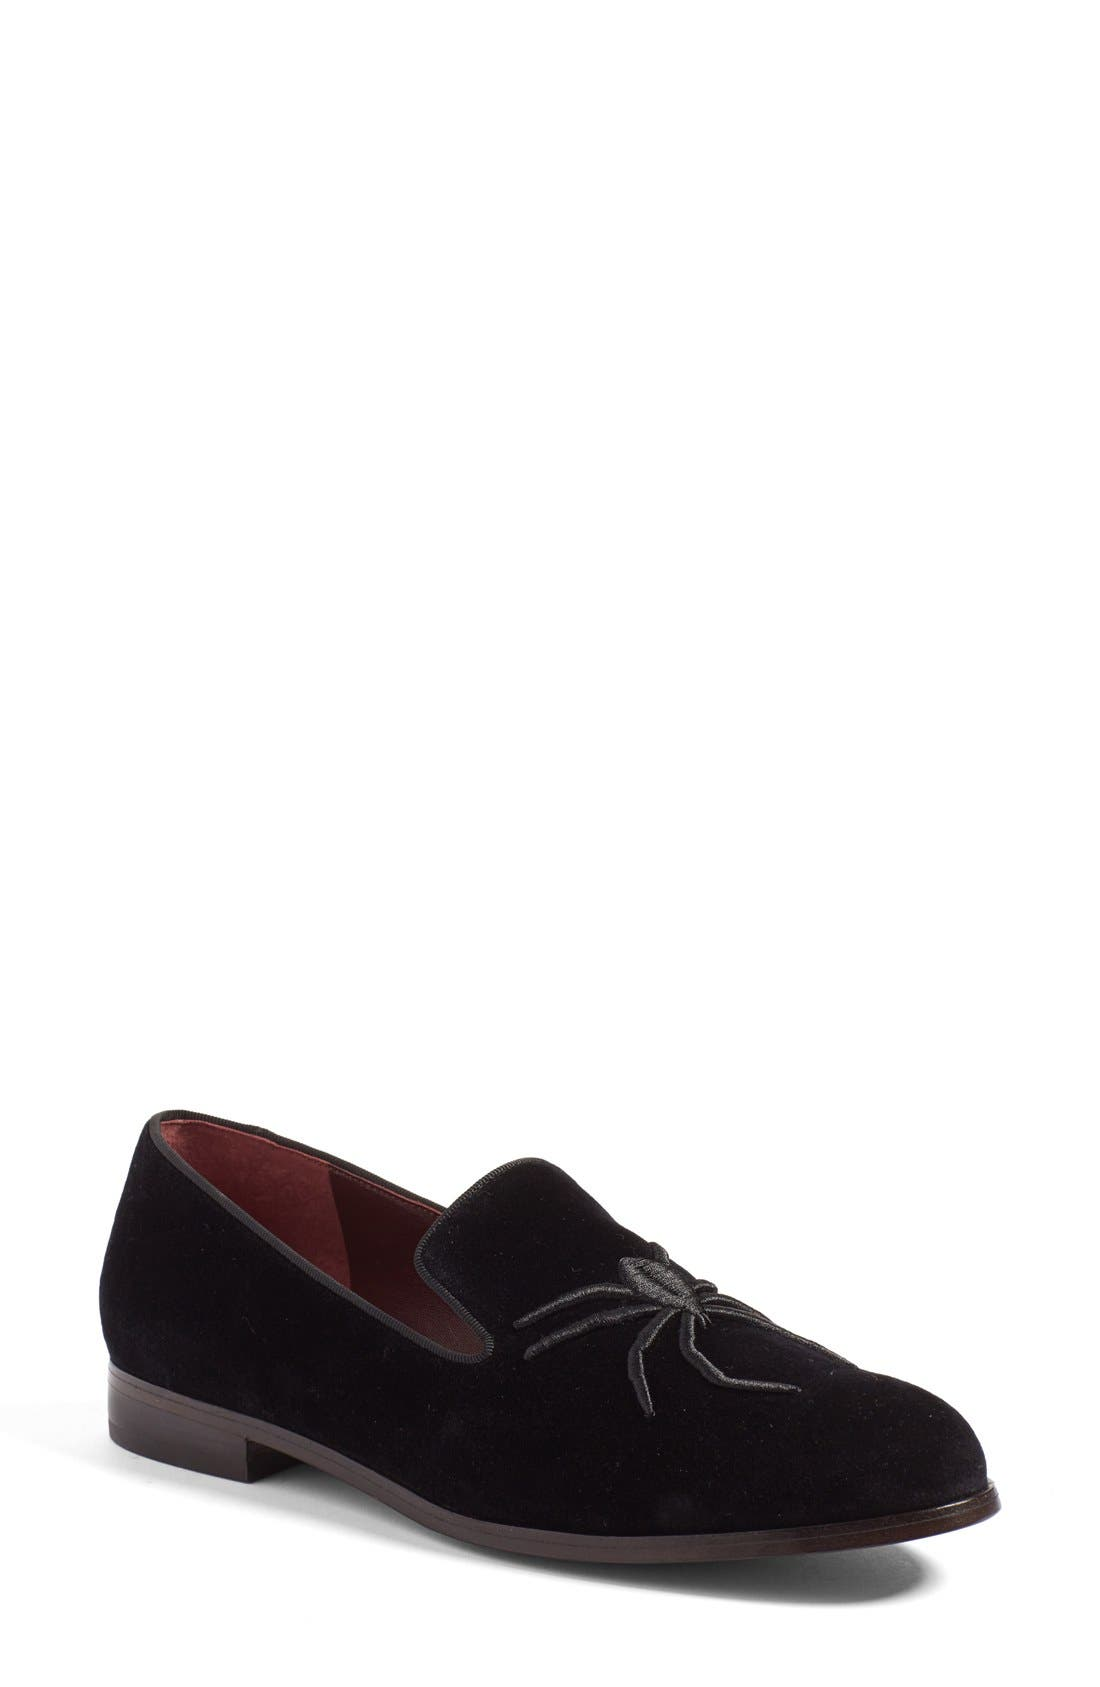 Main Image - MARC JACOBS 'Zoe' Embroidered Spider Loafer (Women)